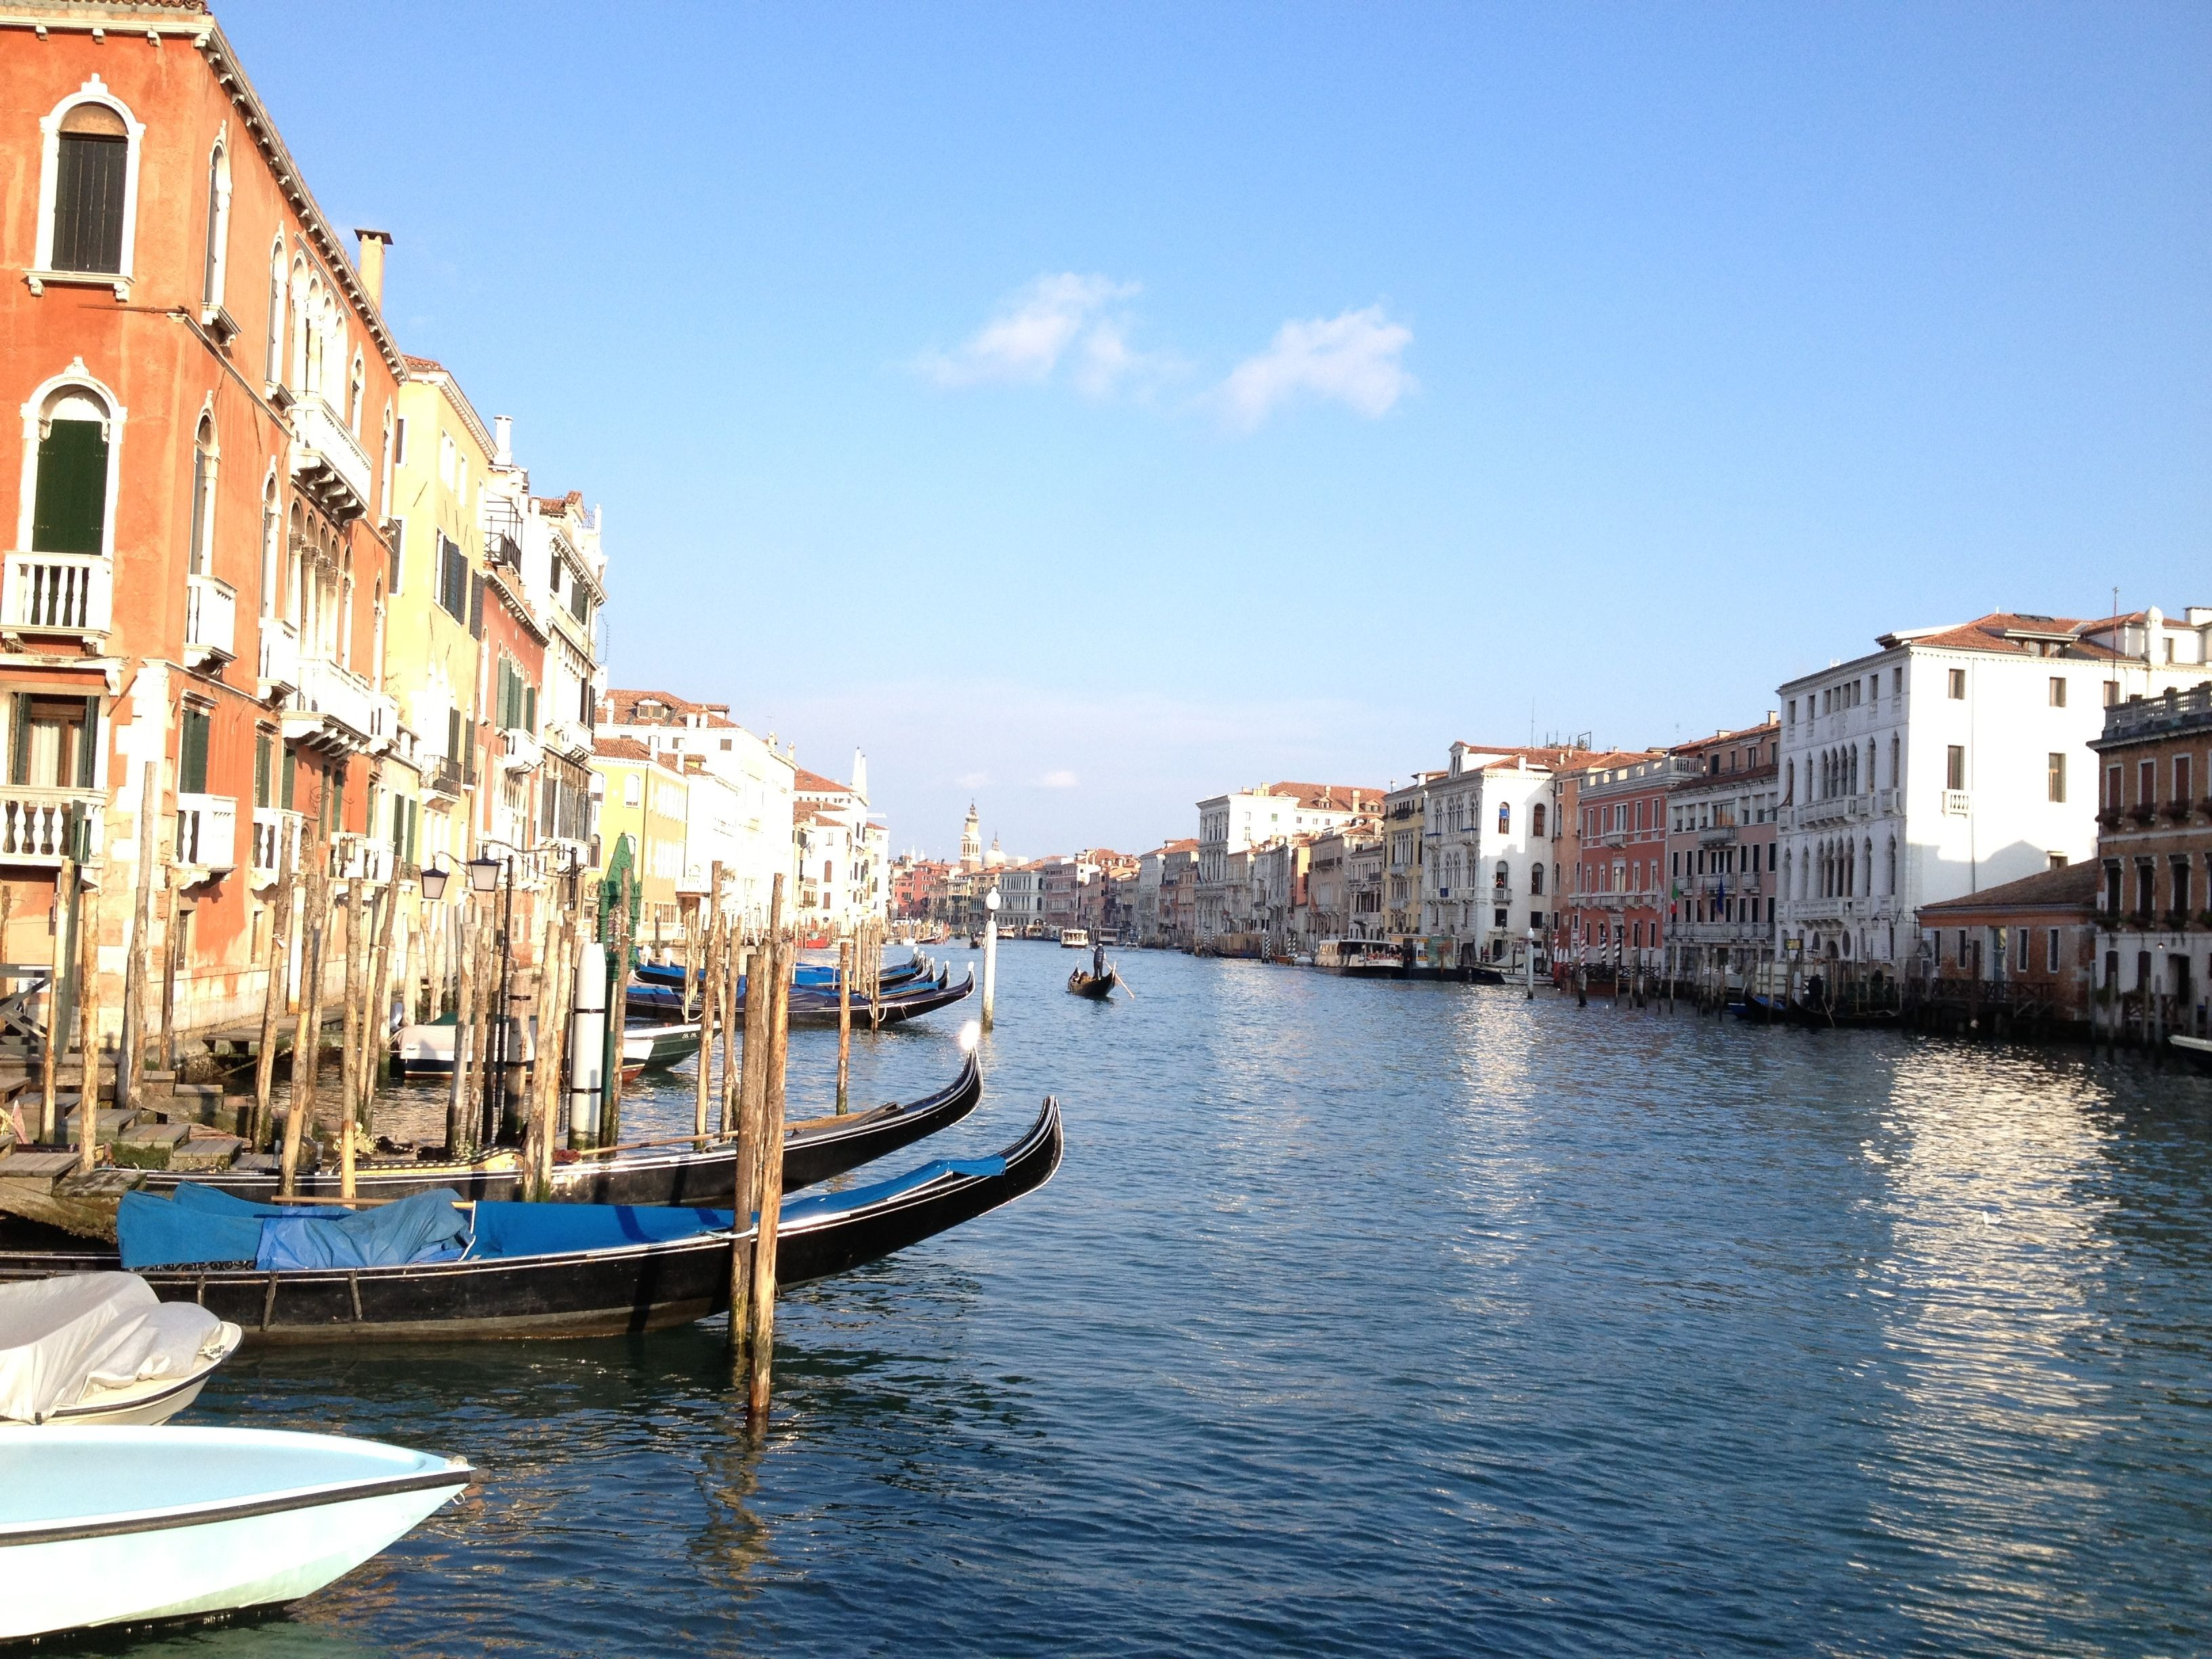 Blue skies in Venice welcome in Spring......we hope!